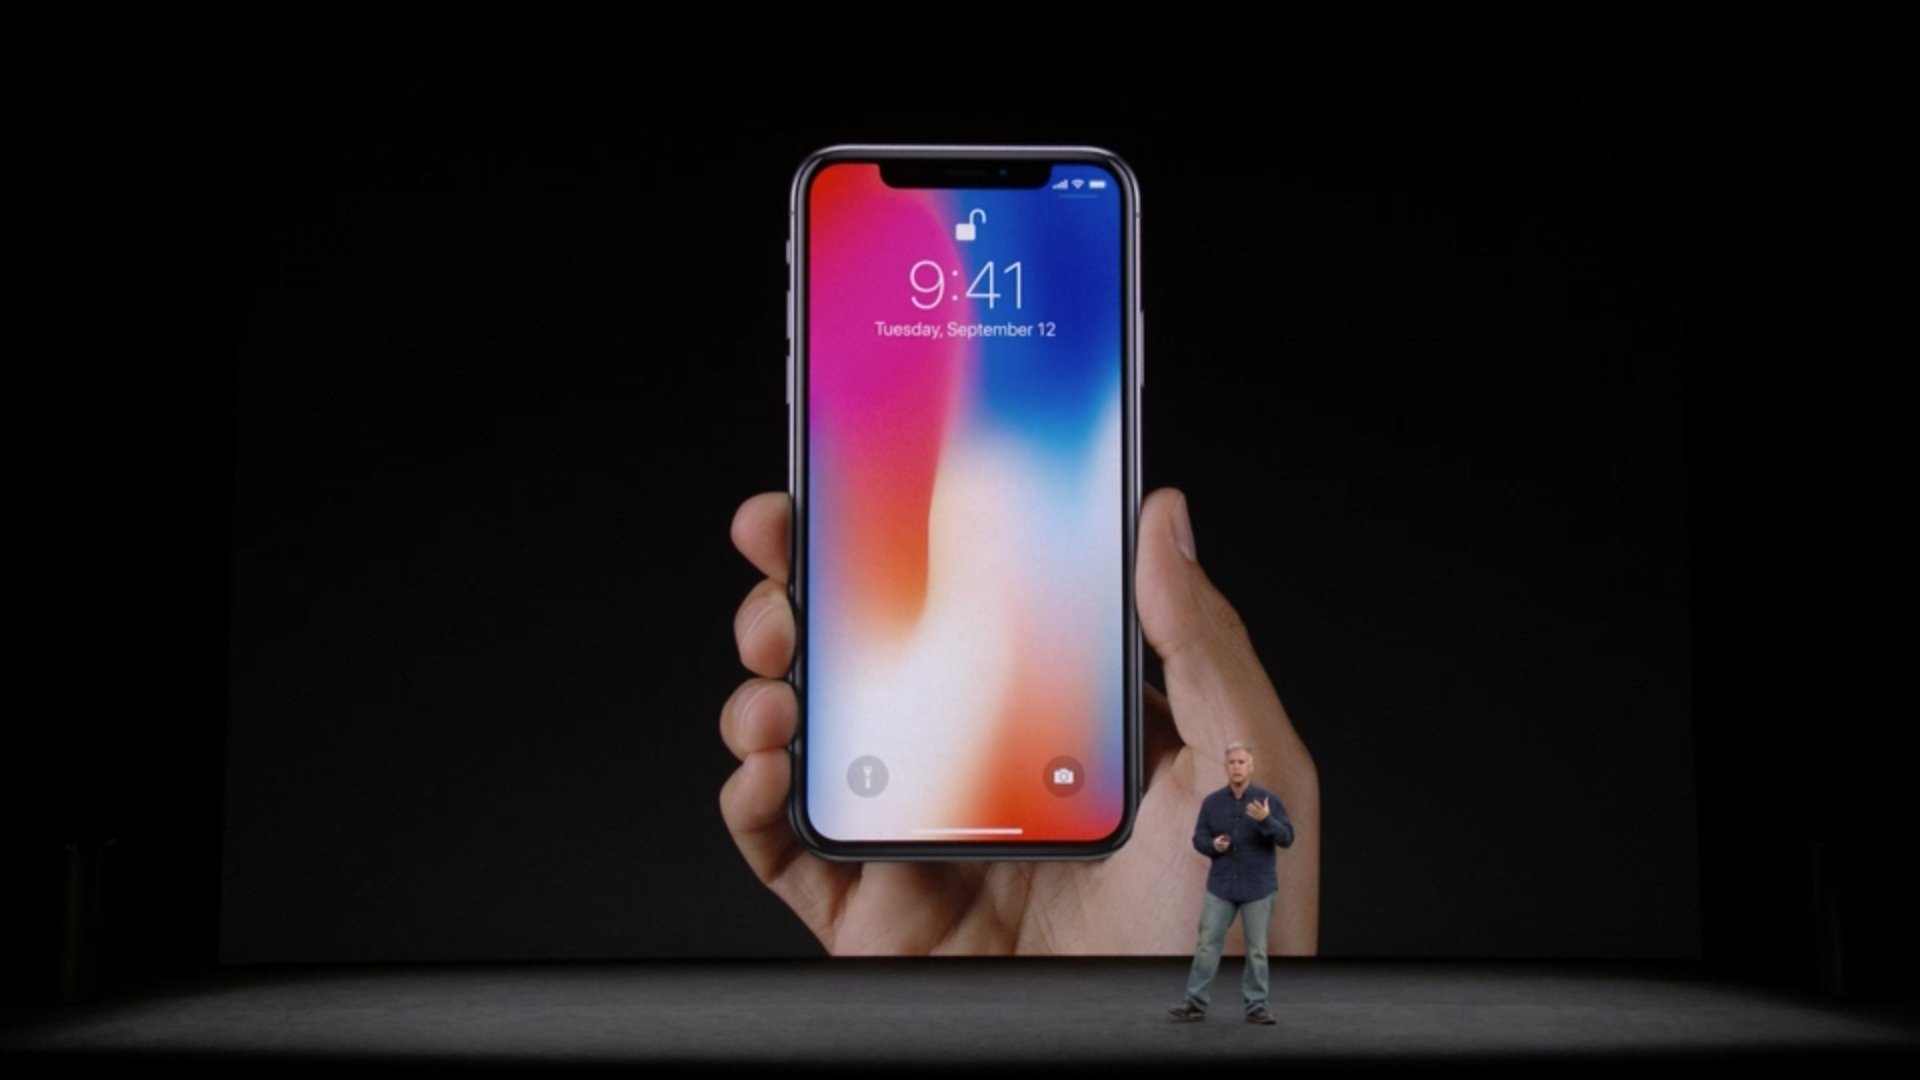 First look at the iPhone X in hand and the lock screen with all-screen front. #AppleEvent https://t.co/EVRN2ZKvgn